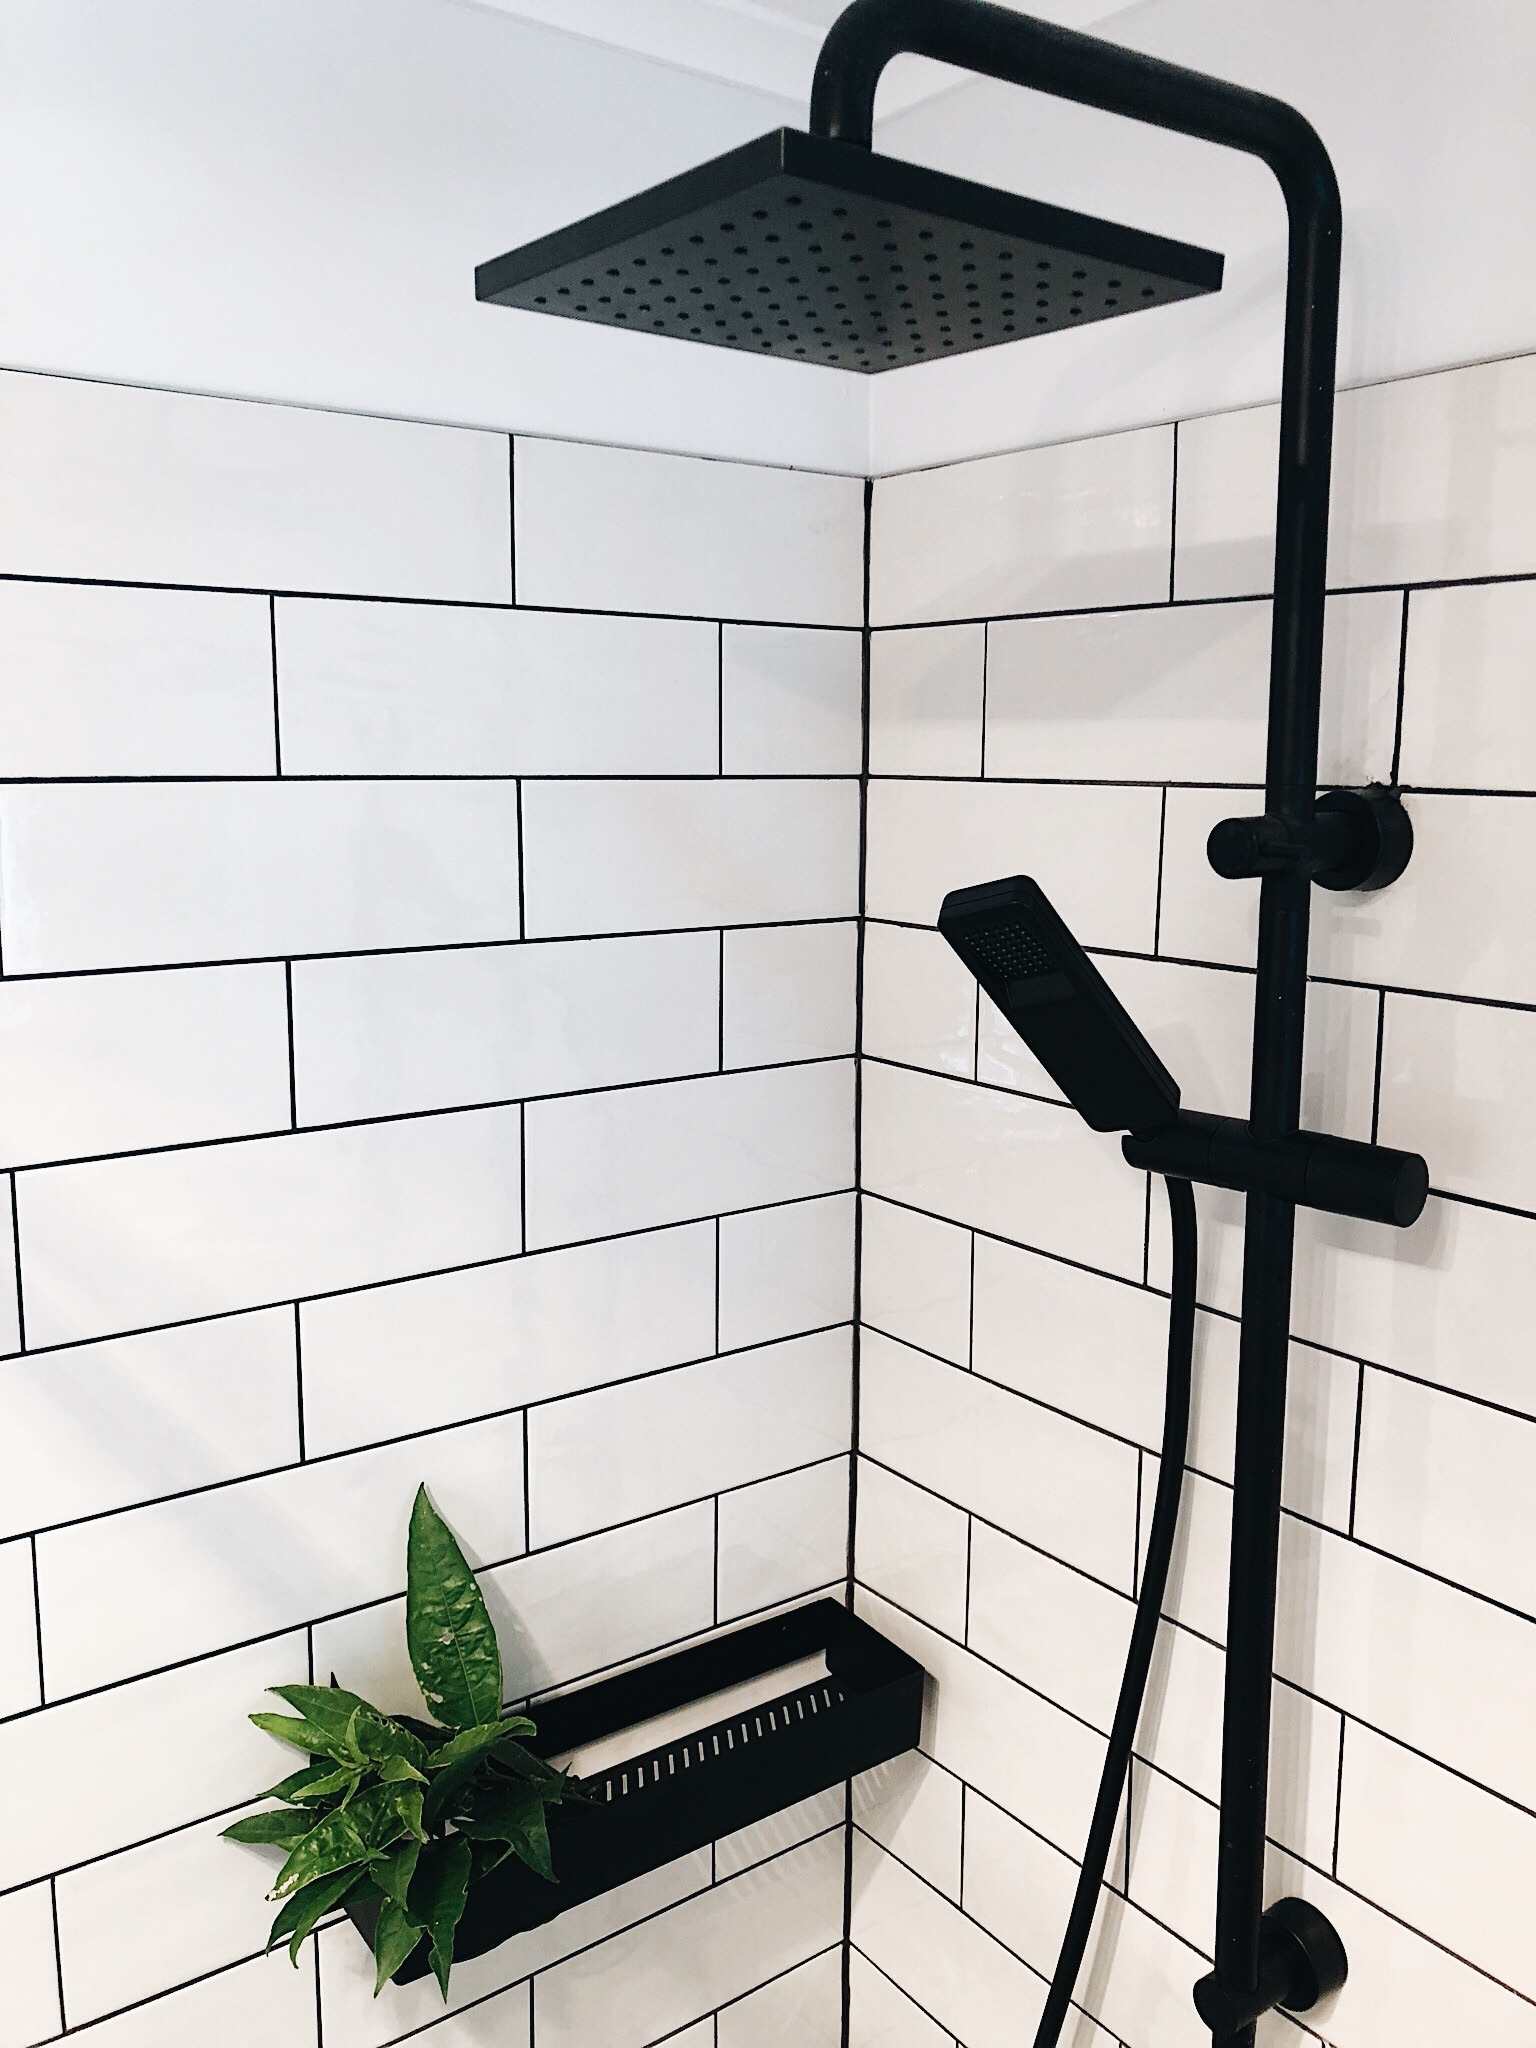 Pearson + Project The Reno Race The Rookies Bathroom Monochrome Clark Shower Rail Subway Tiles Black Matt Shelf.jpg